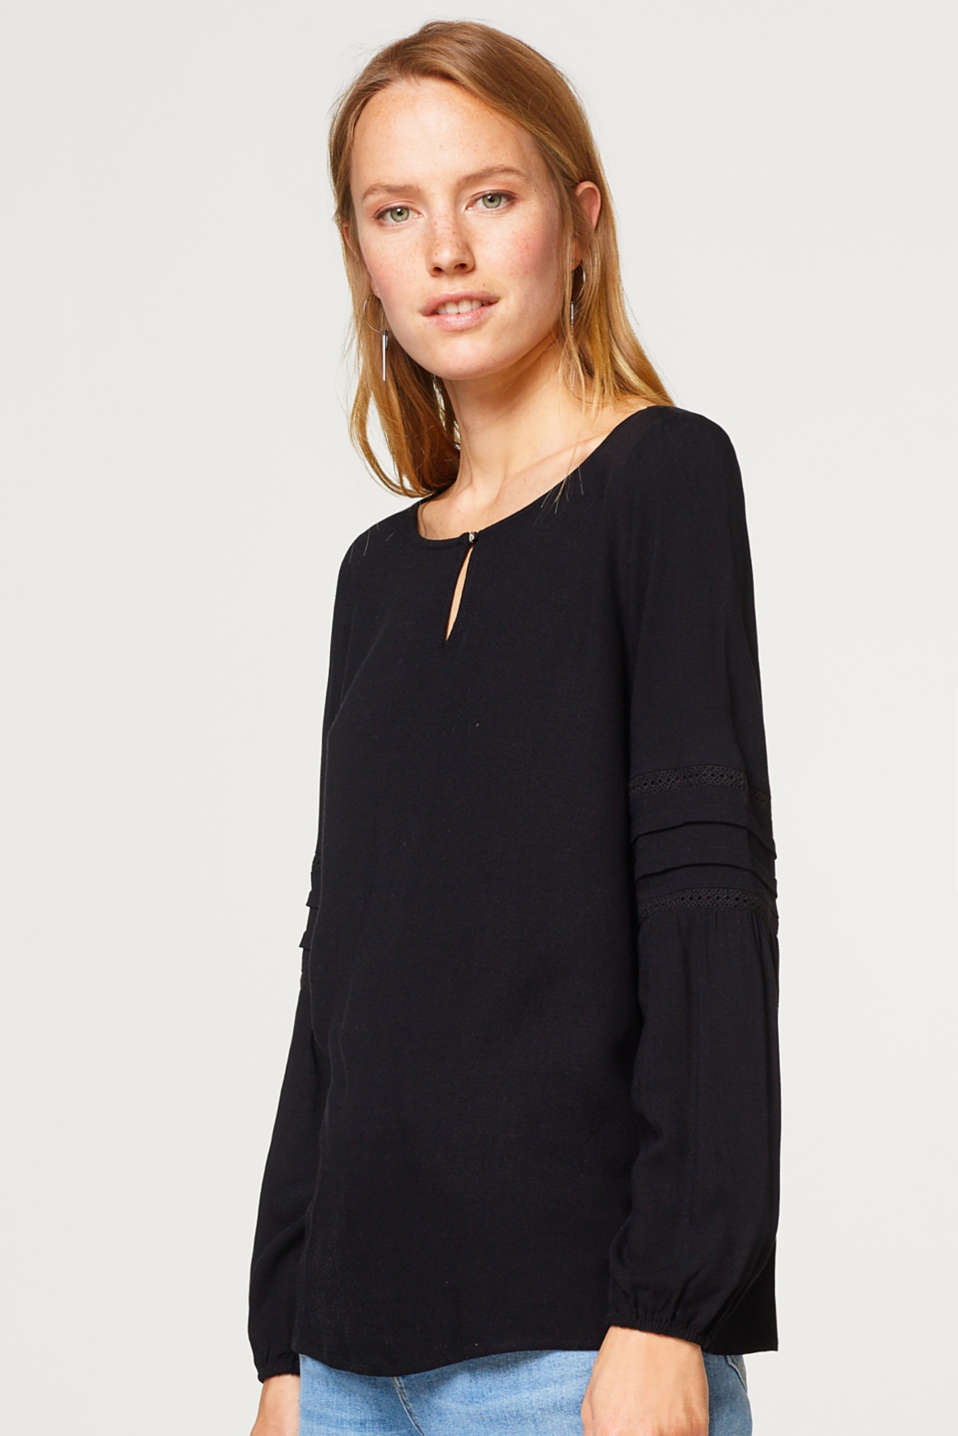 Esprit - Blouse with lace details